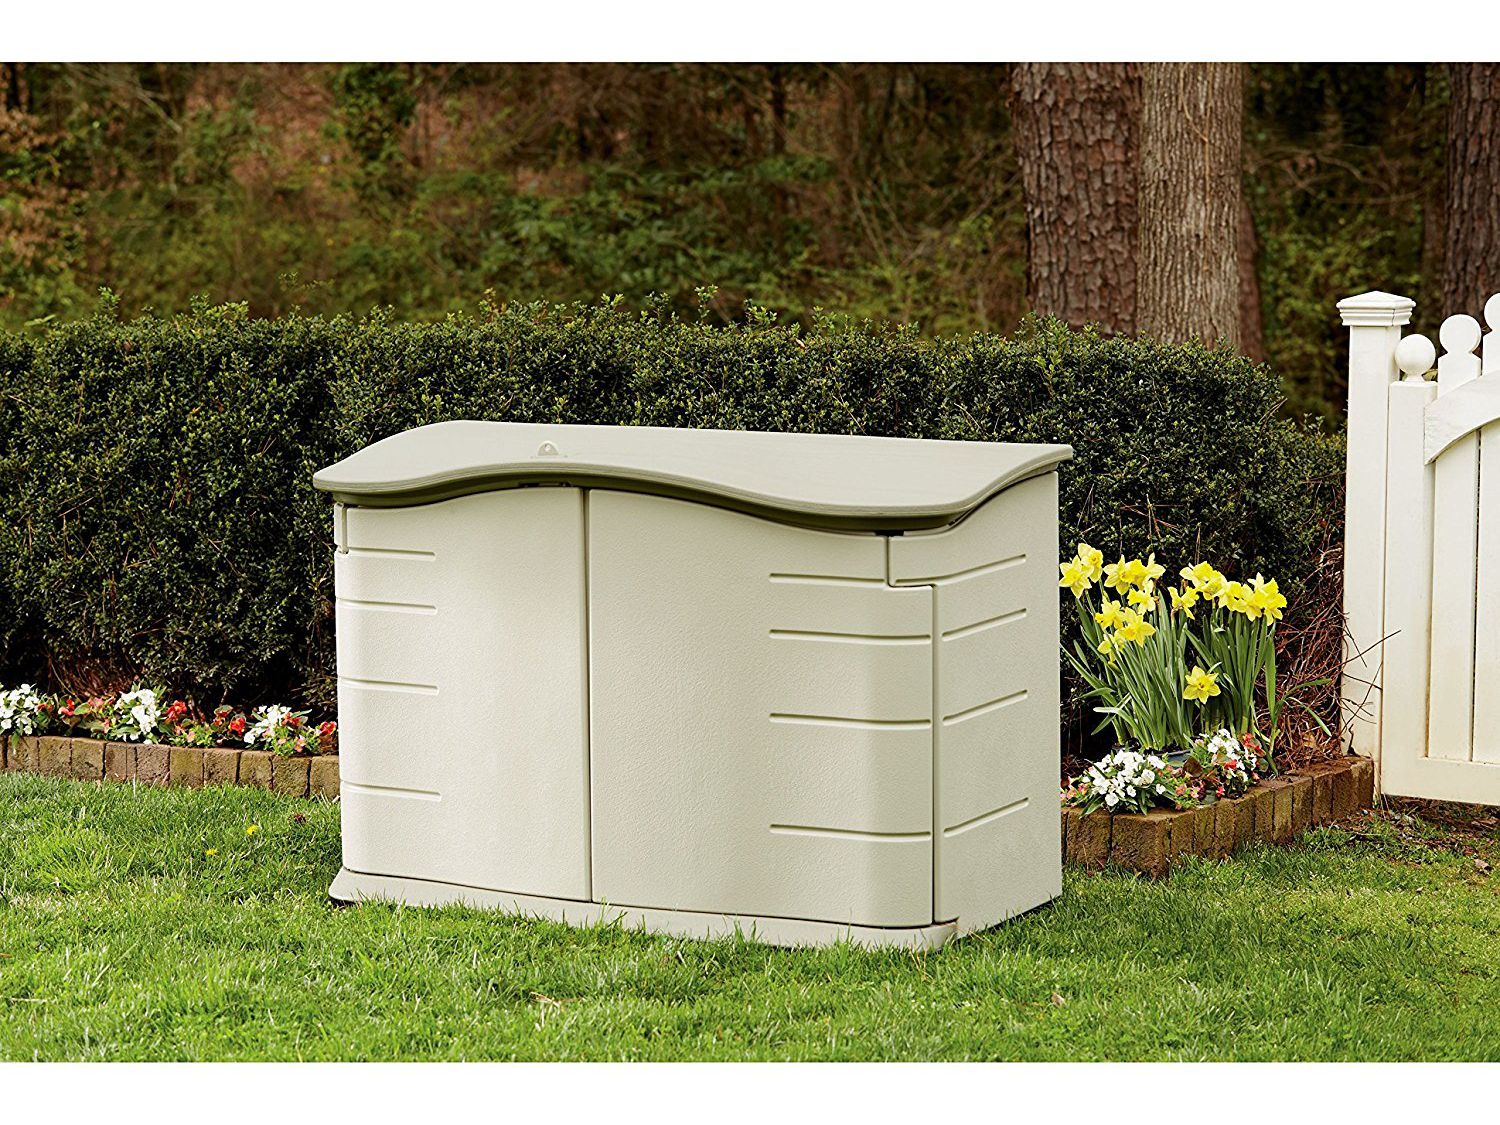 The 6 Best Outdoor Storage Sheds of 2019